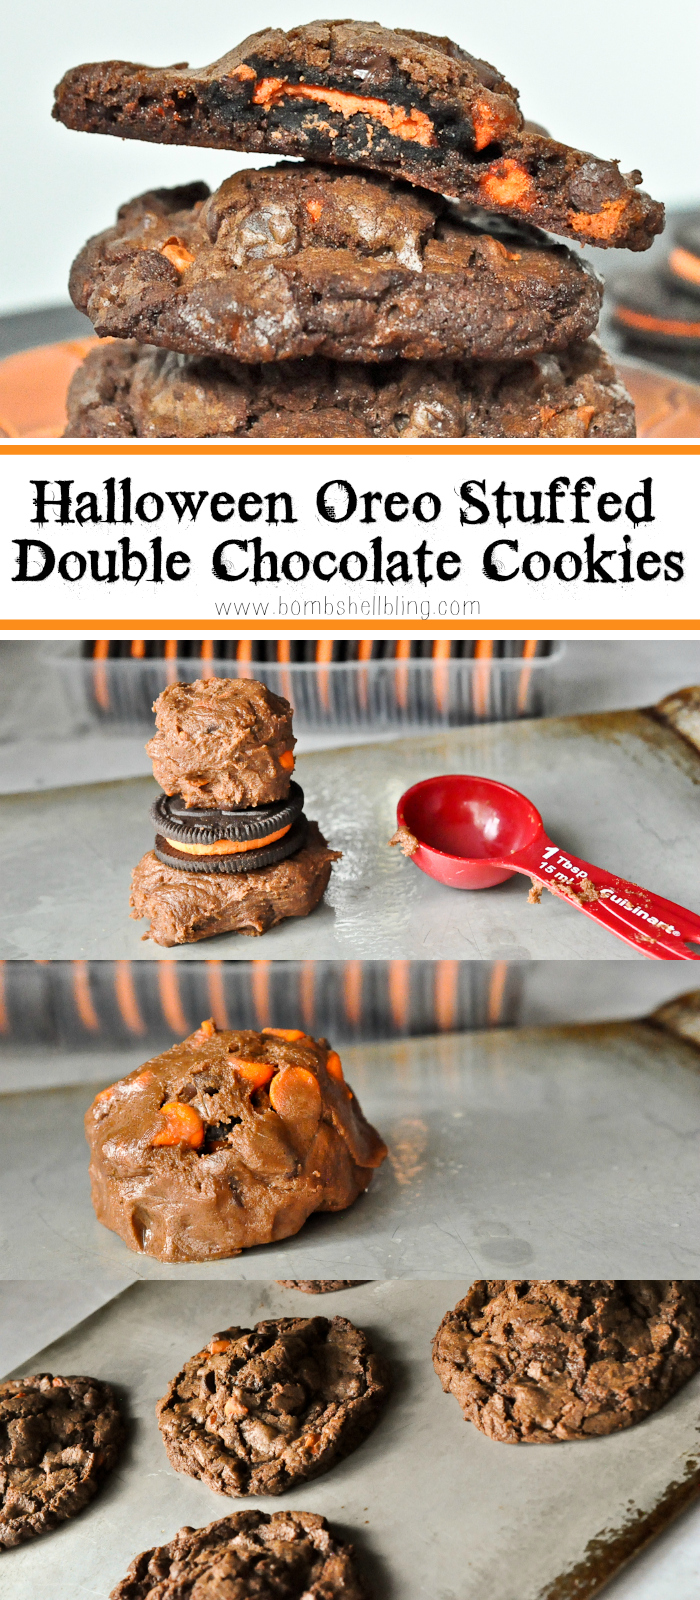 WHOA MAMA!!! Halloween Oreo Stuffed Double Chocolate Cookies!!!!!